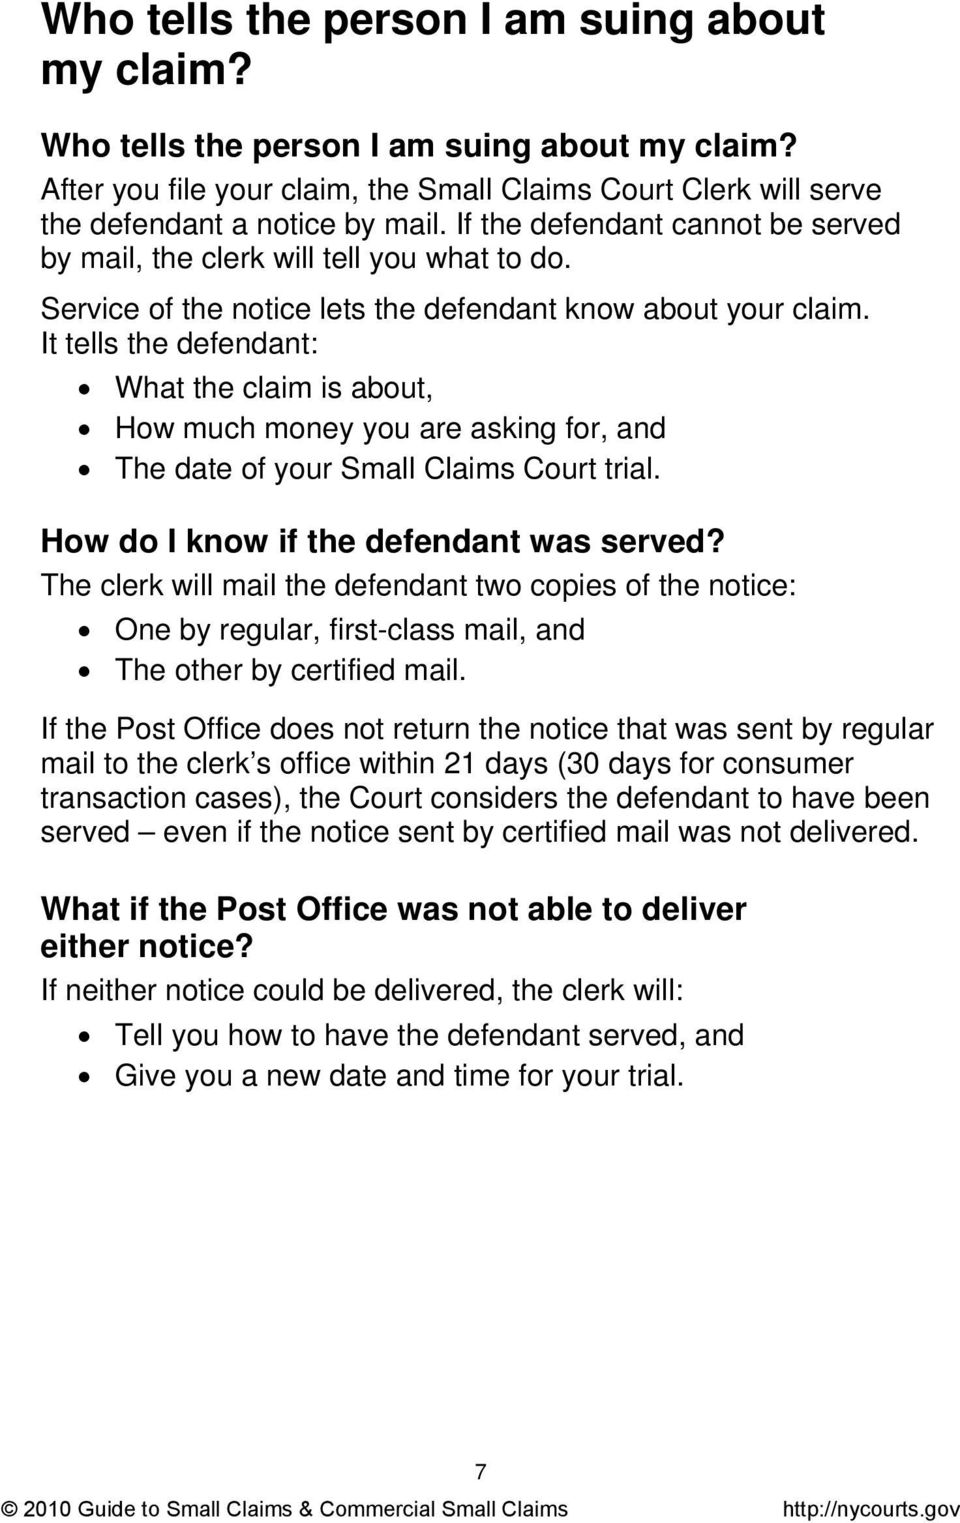 It tells the defendant: What the claim is about, How much money you are asking for, and The date of your Small Claims Court trial. How do I know if the defendant was served?